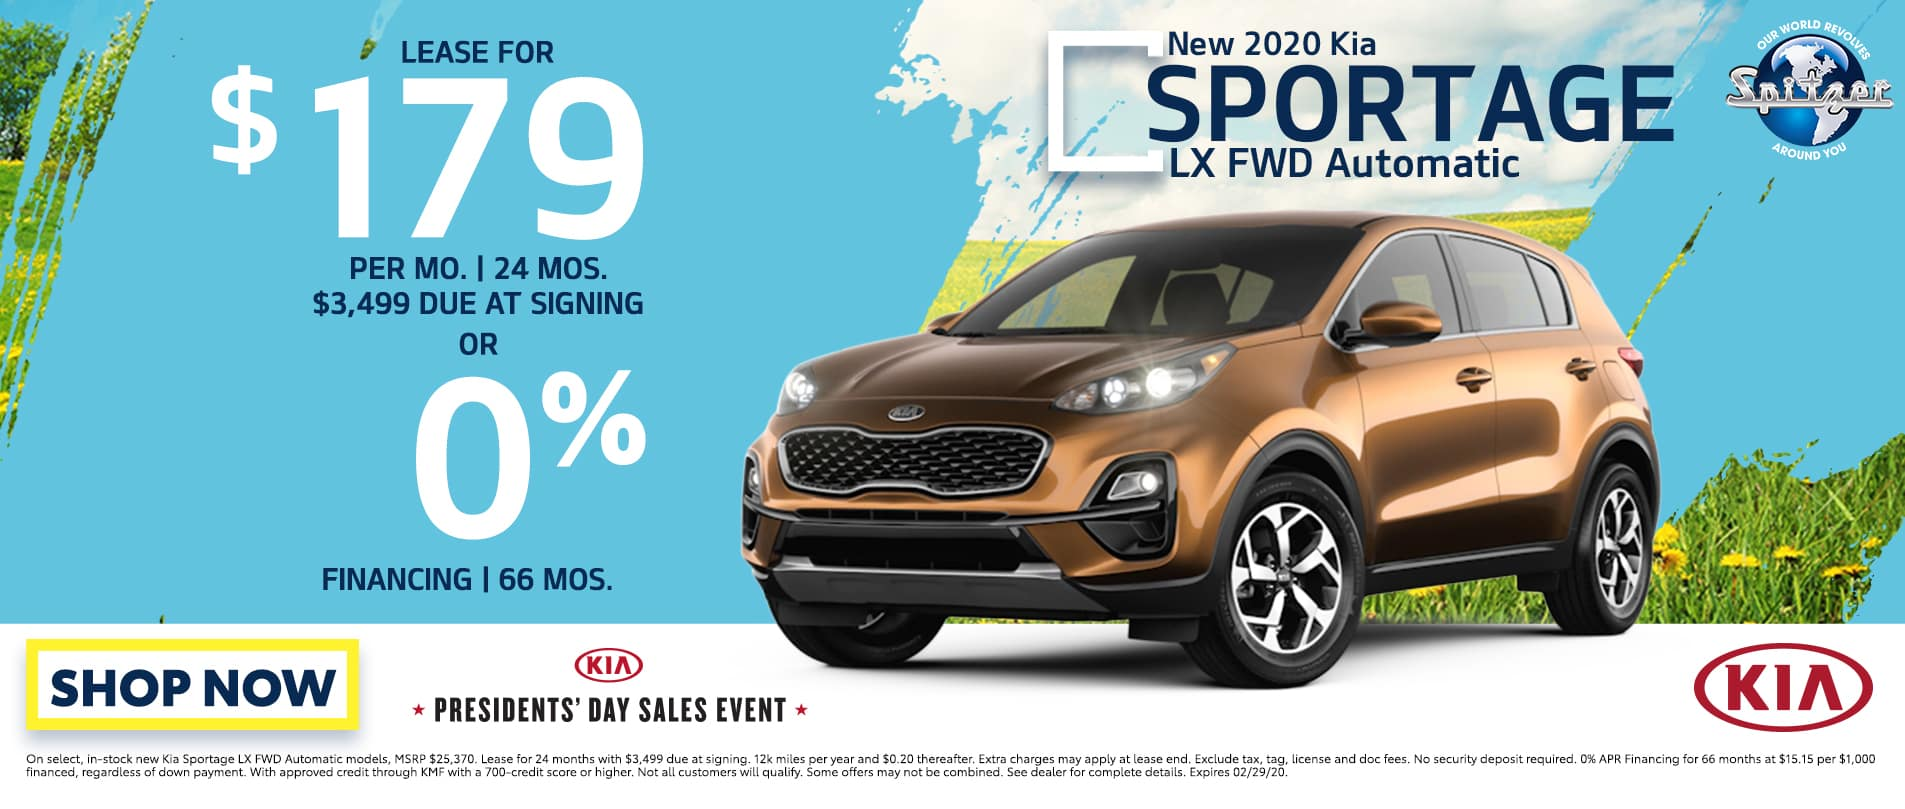 Sportage   Lease for $179